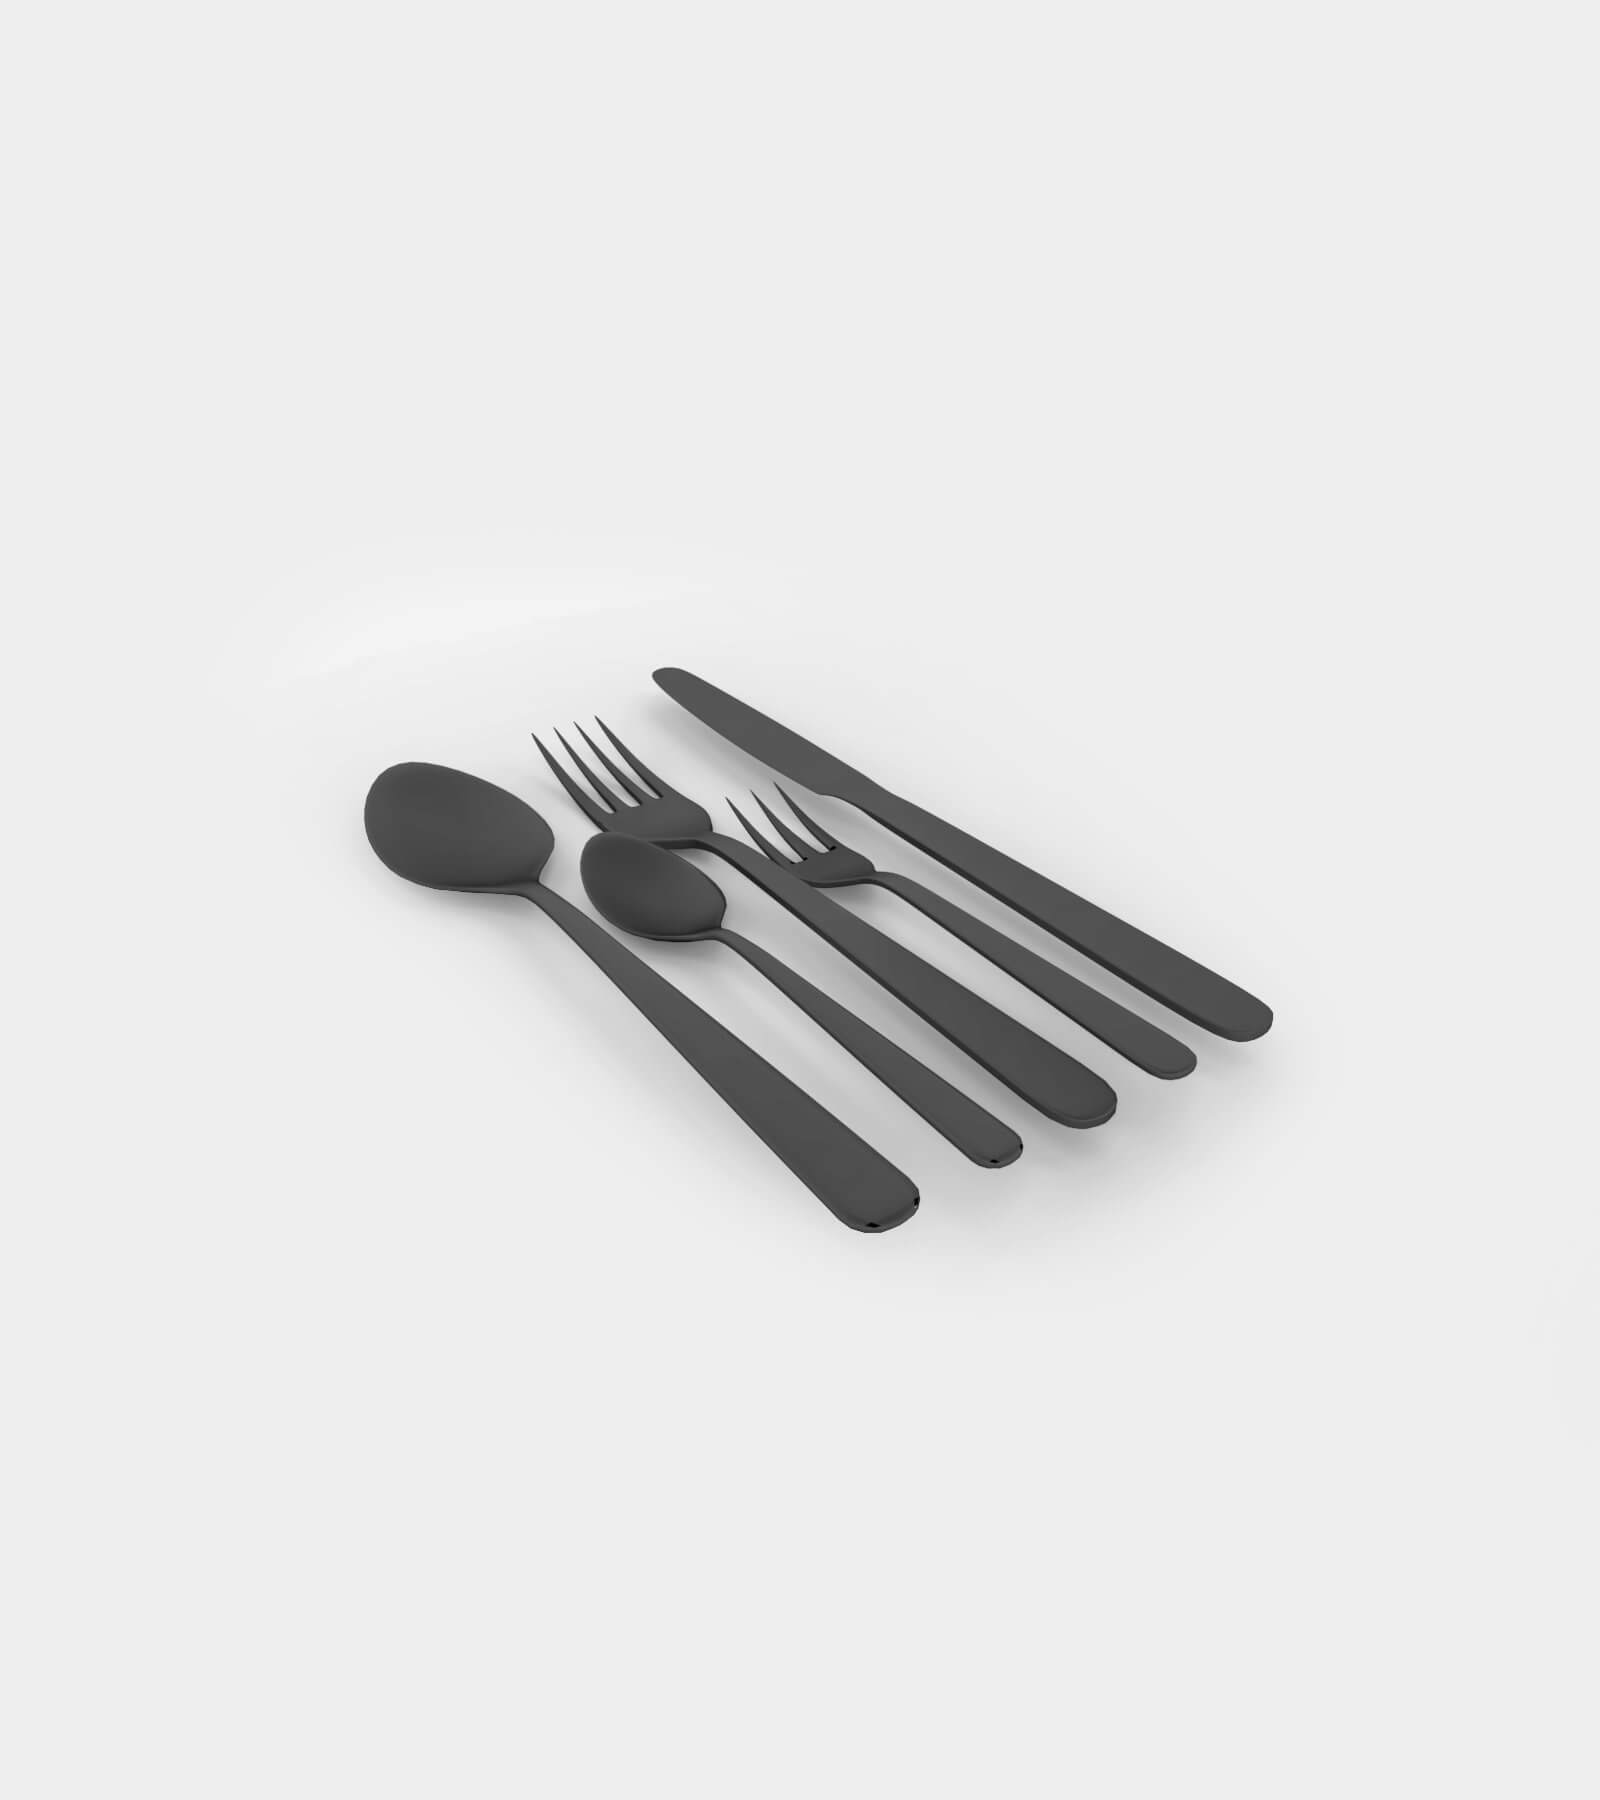 Cuttlery; spoon, knife and fork - 3D Model